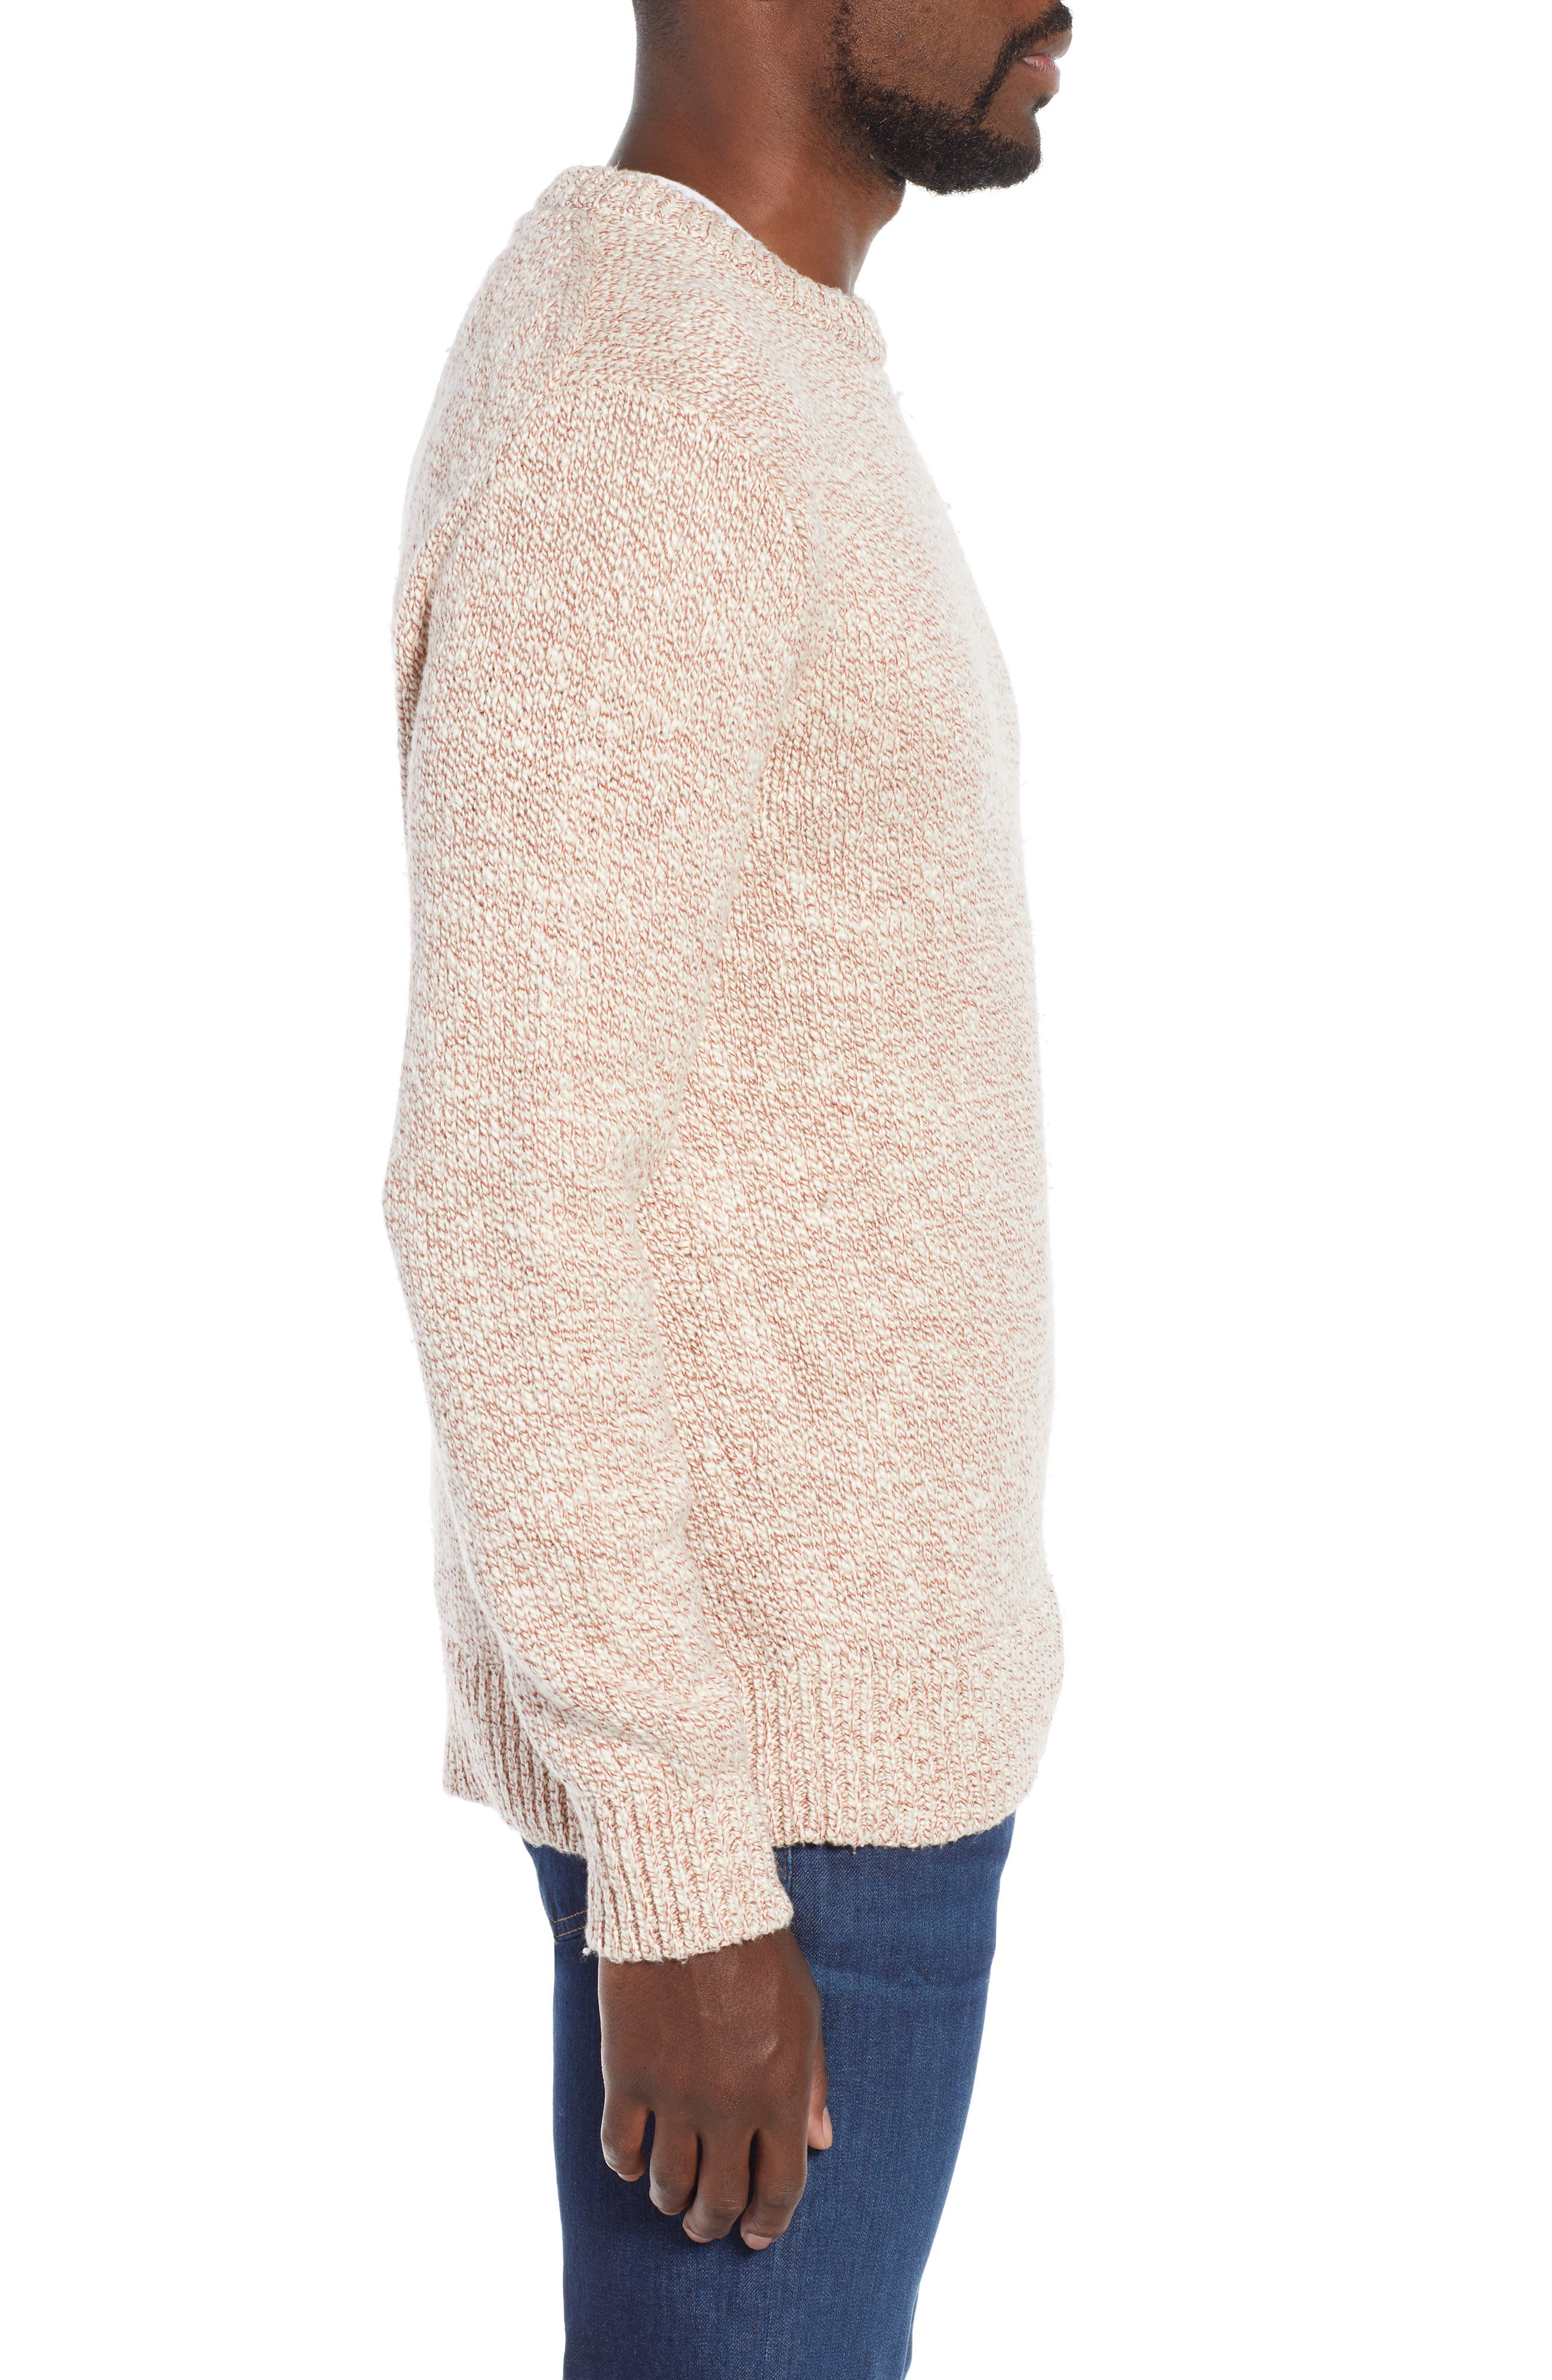 Wallace & Barnes Crewneck Marled Cotton Sweater,                             Alternate thumbnail 3, color,                             TERRACOTTA